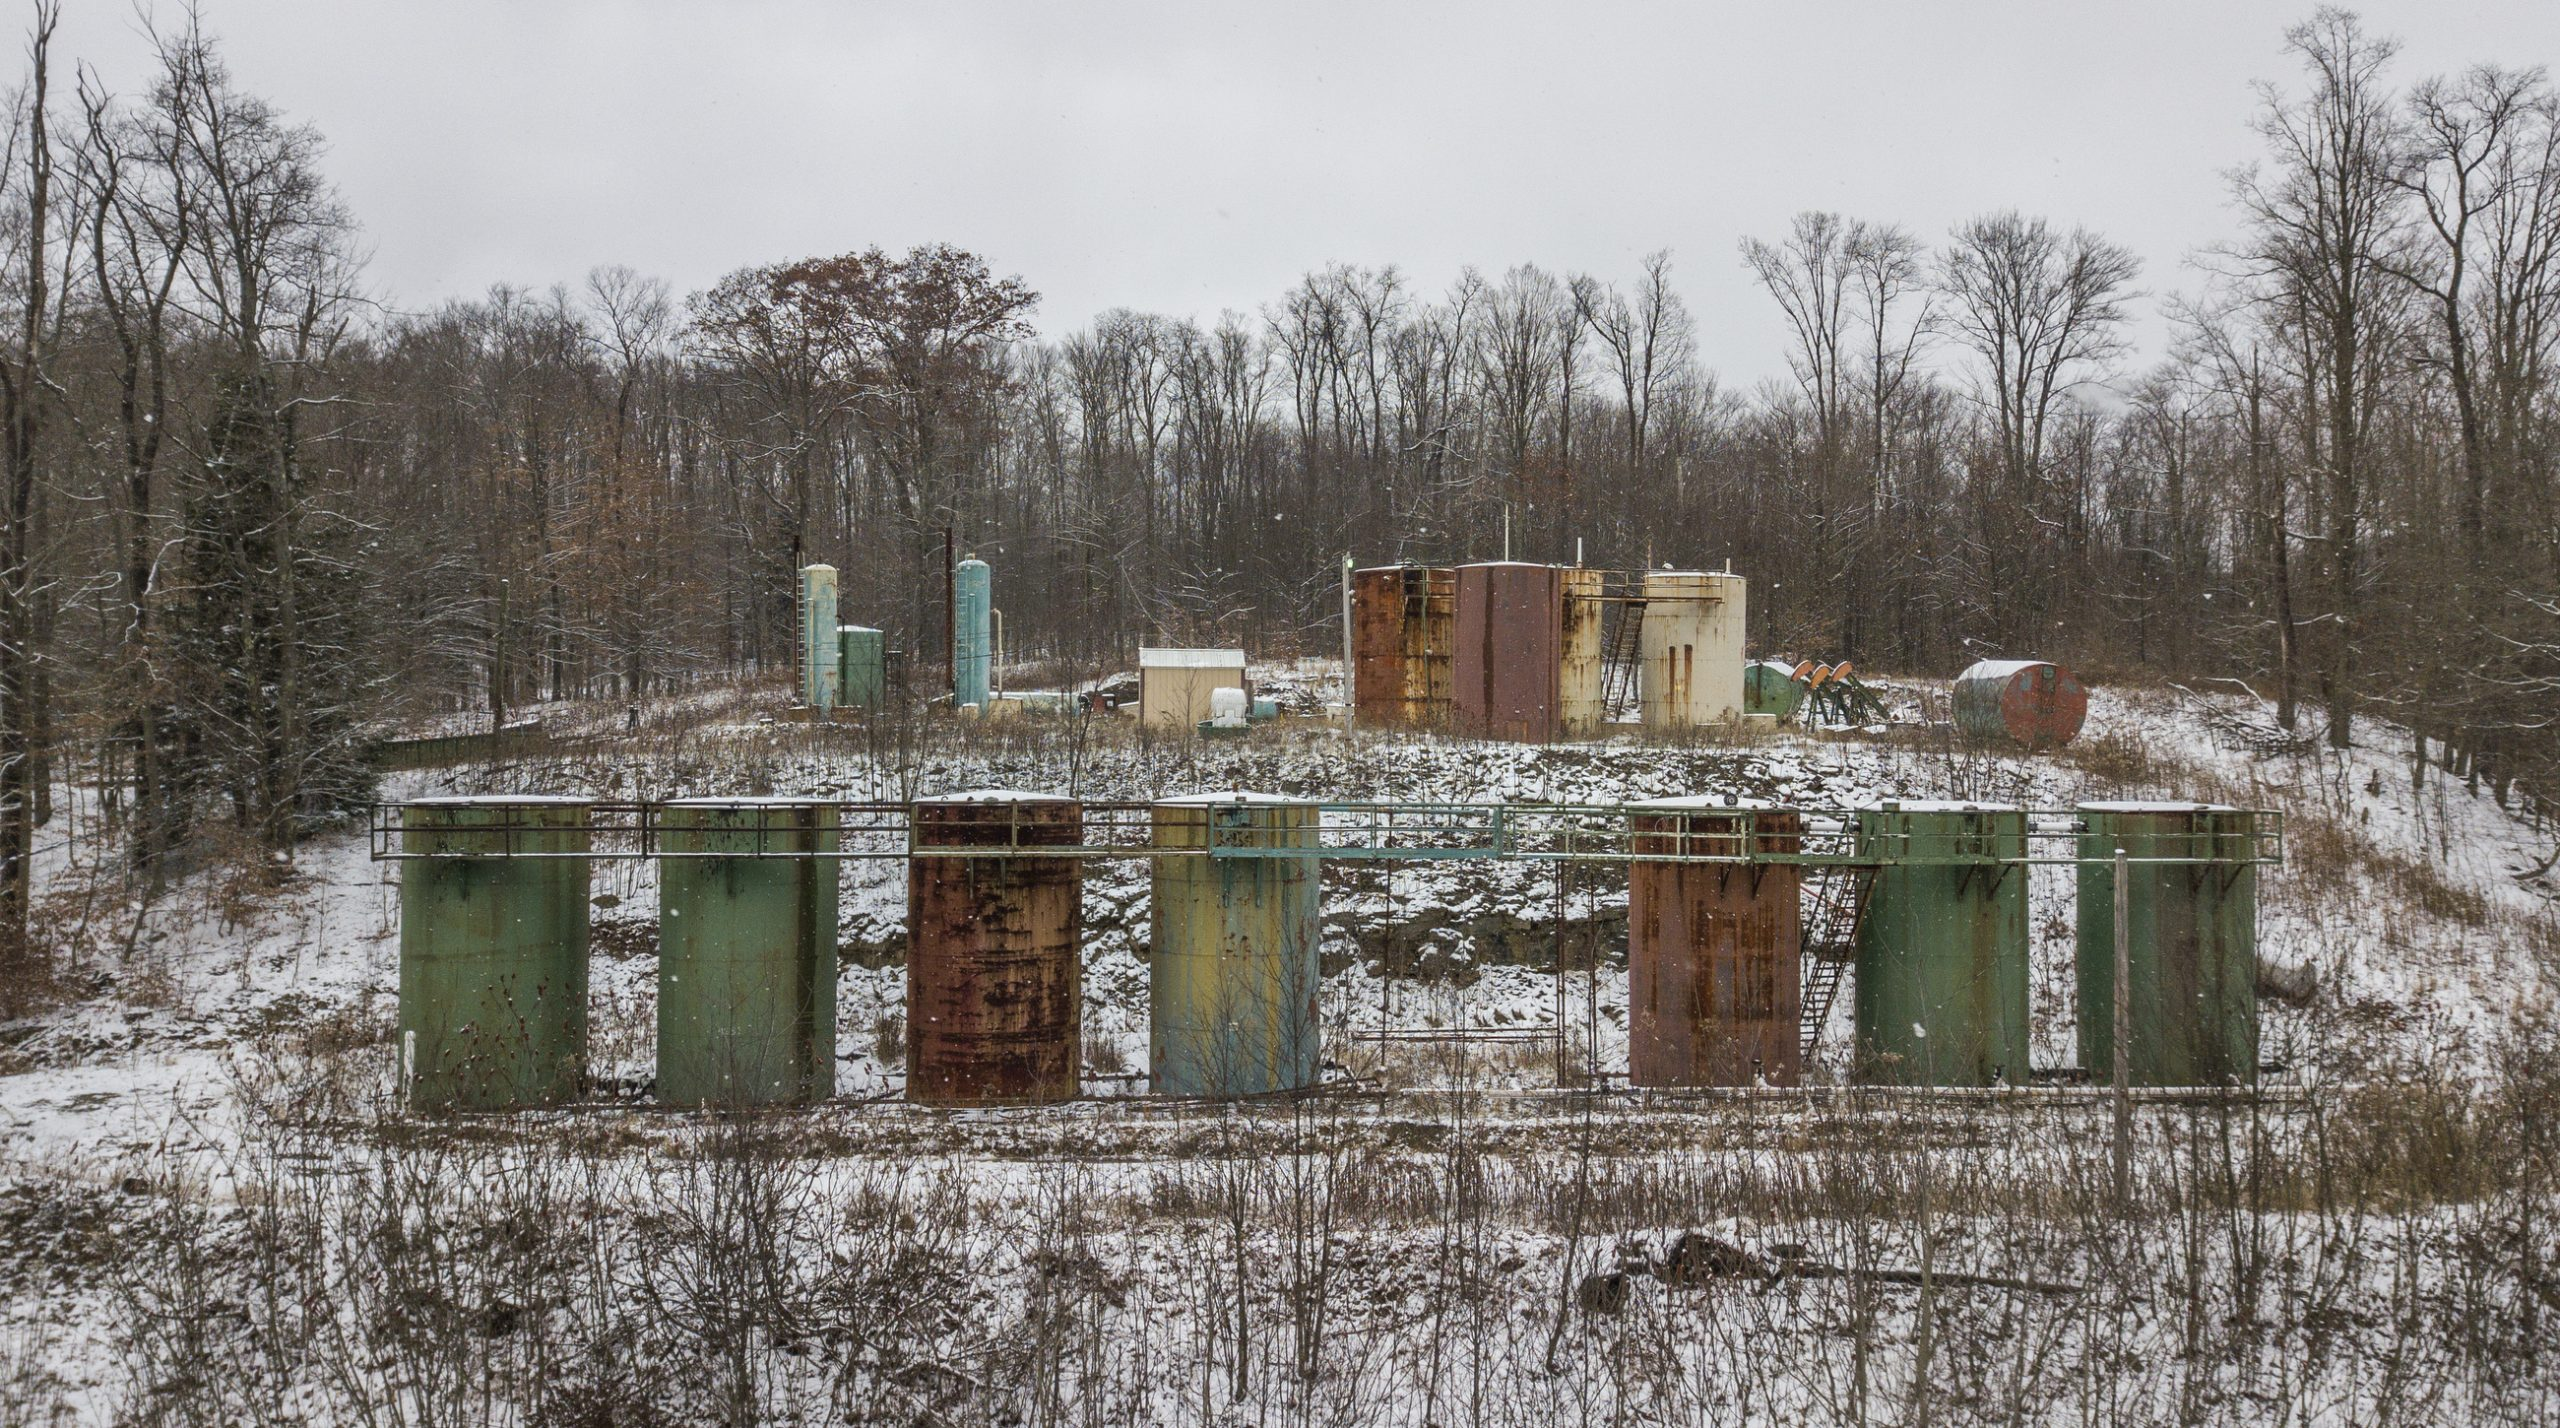 Abandoned Oil and Gas Wells Plugging Could Help Environment